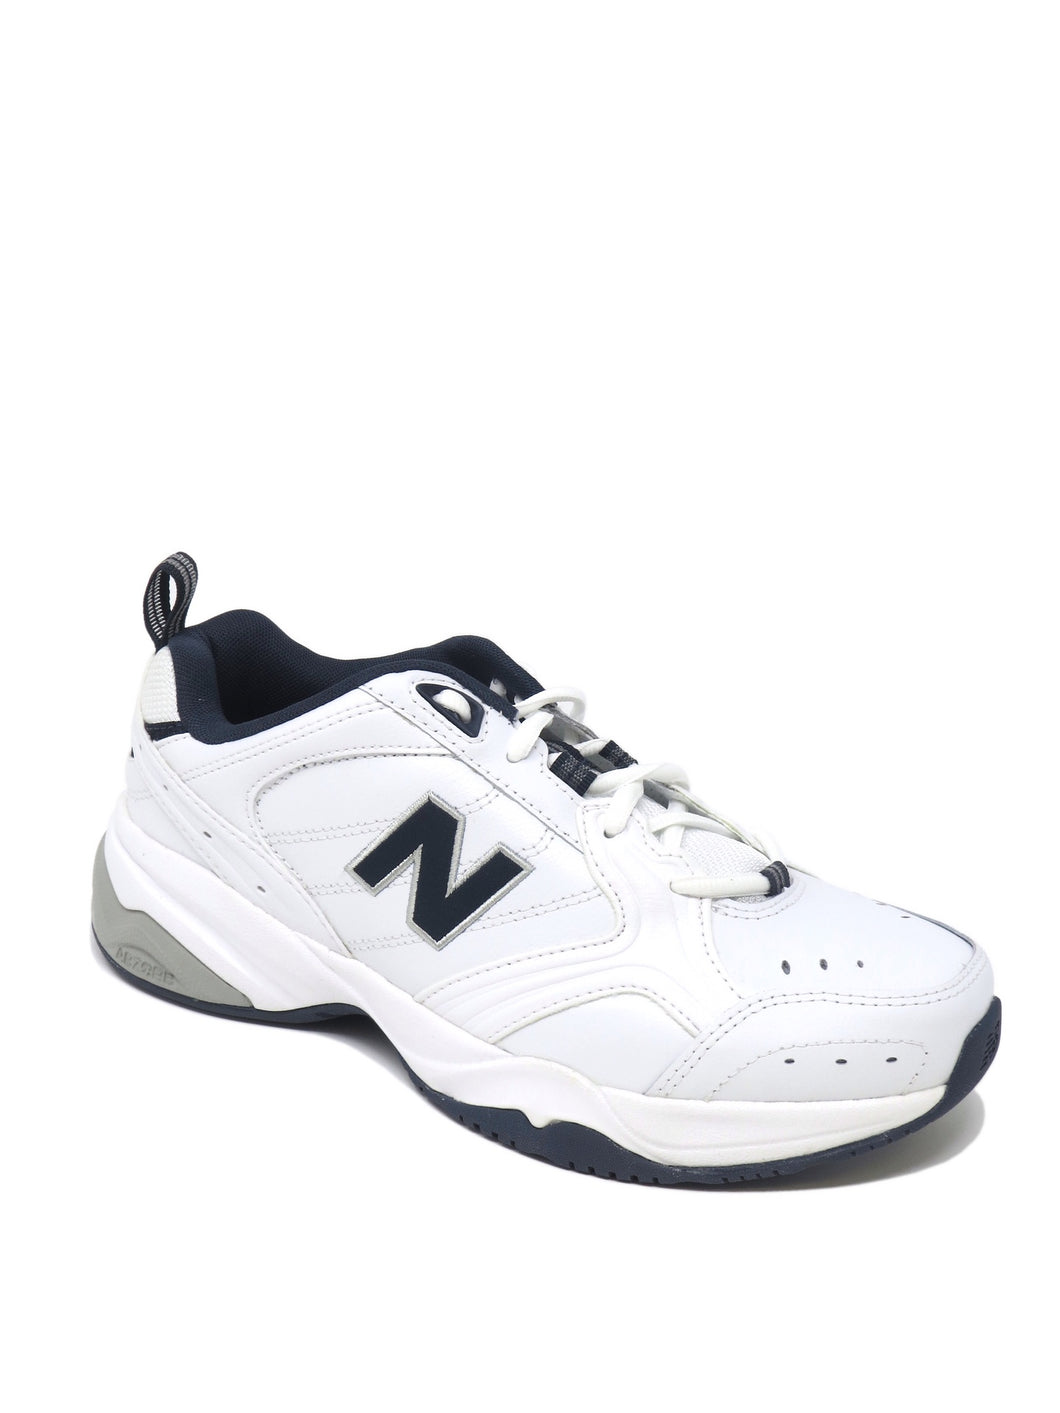 New Balance | MX624WN2 | Lace Runner 624 | White